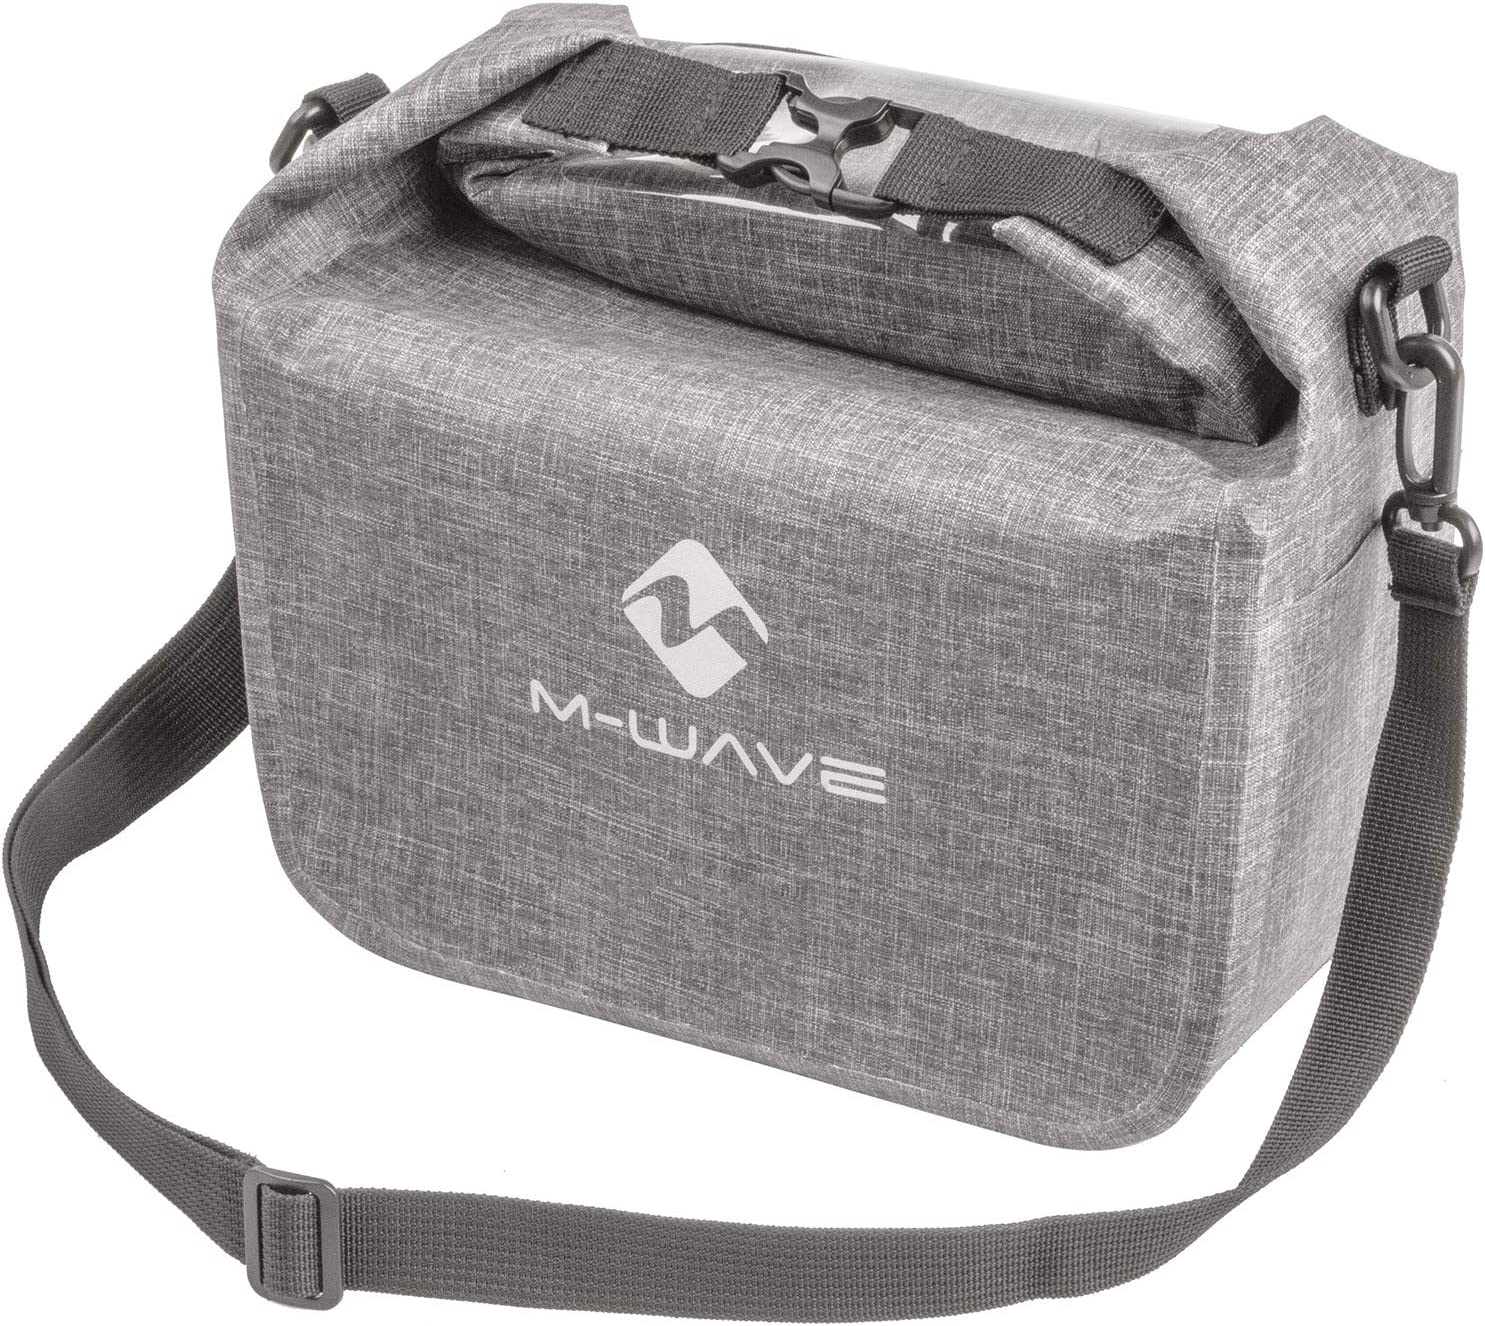 M-Wave Unisex's Suburban Front Credence Bicycle Handlebar Attention brand Grey Bag Appr